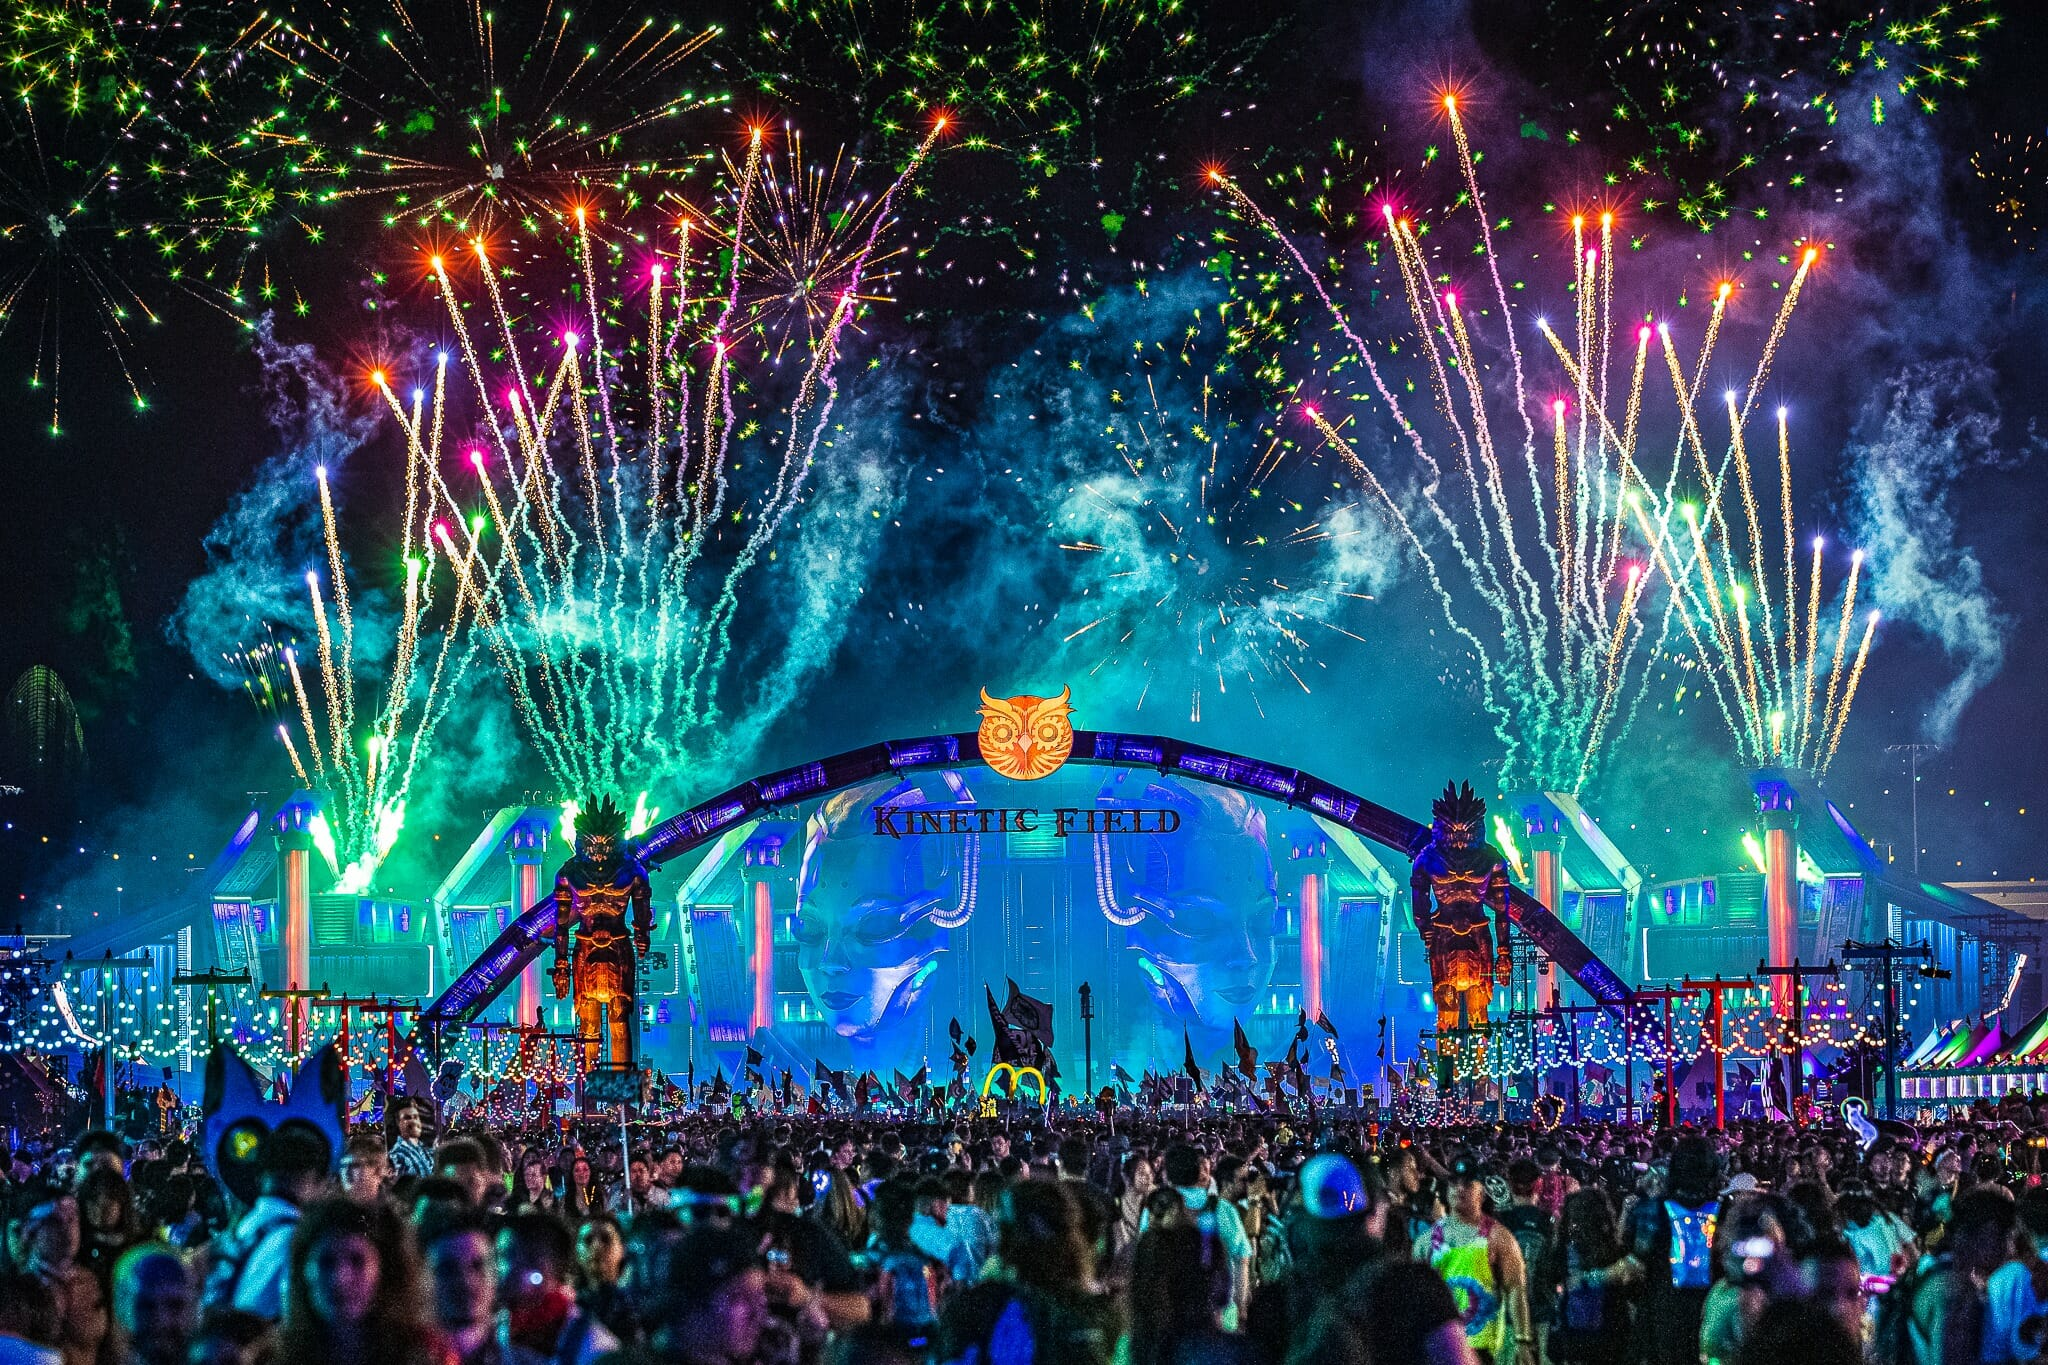 Insomniac to forge ahead with EDC Las Vegas' 25th anniversary in May98731913 3011451615640620 3990917713483530240 N 1